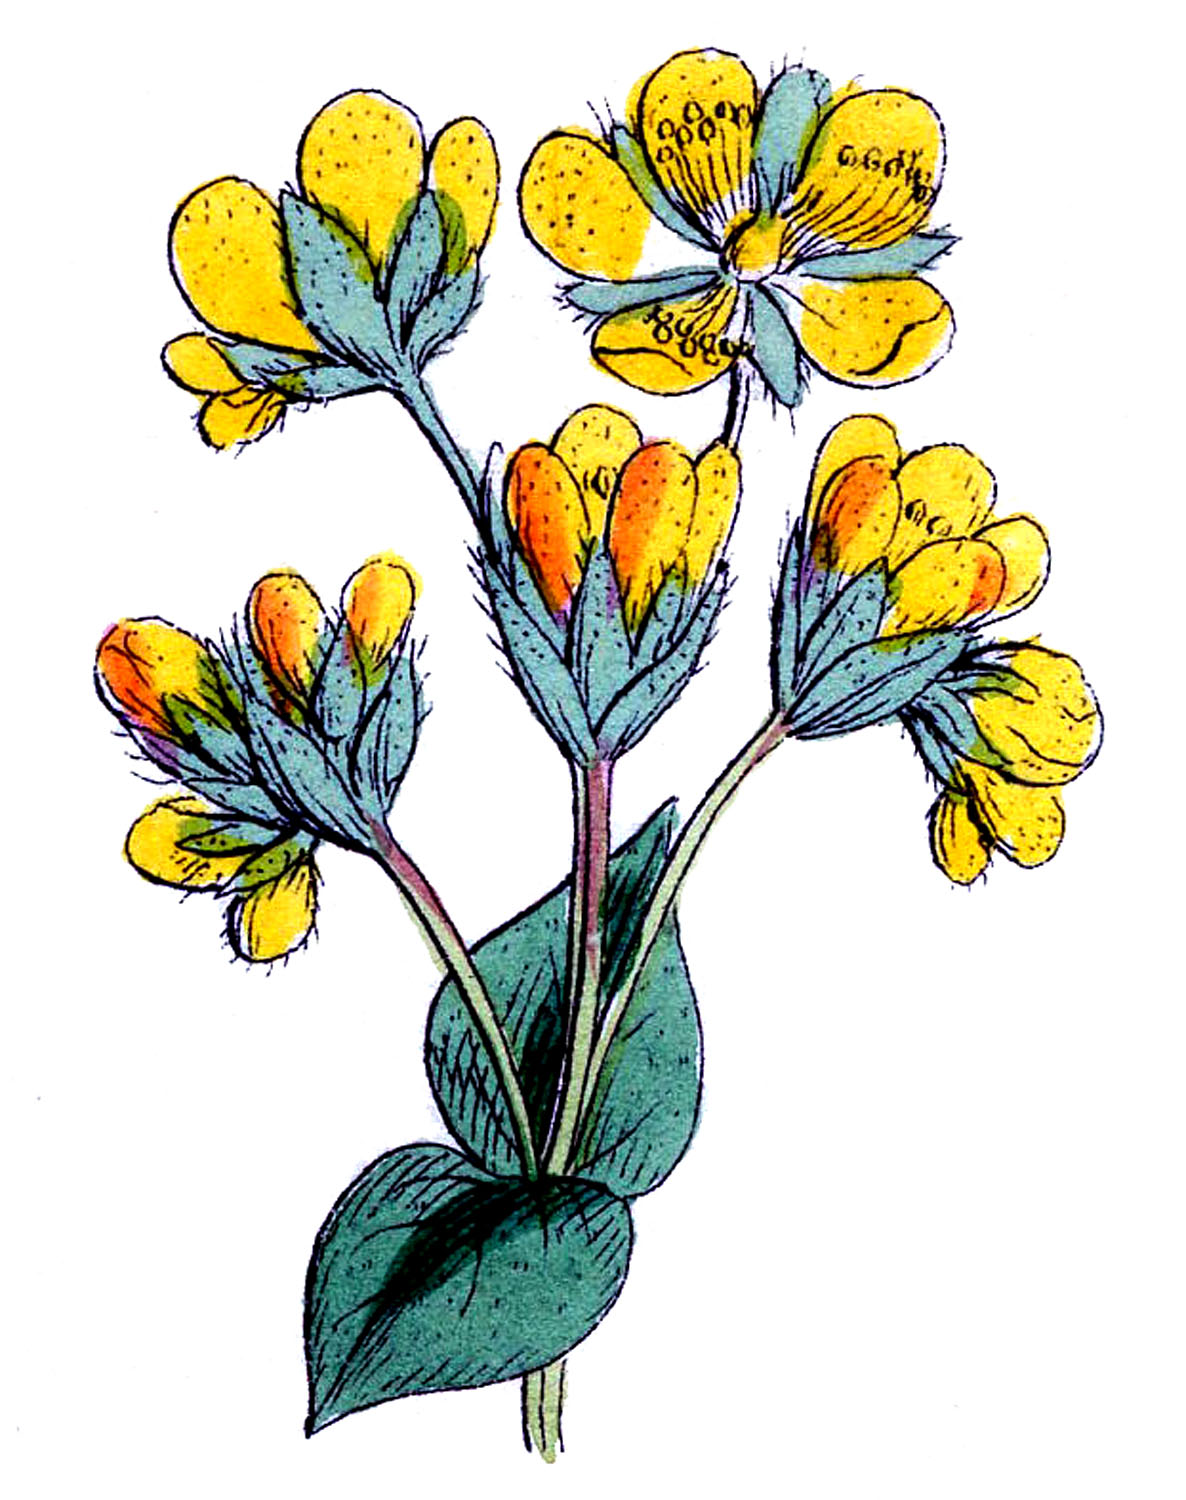 Vintage Botanical Images - Bright Yellow Flowers - The ...